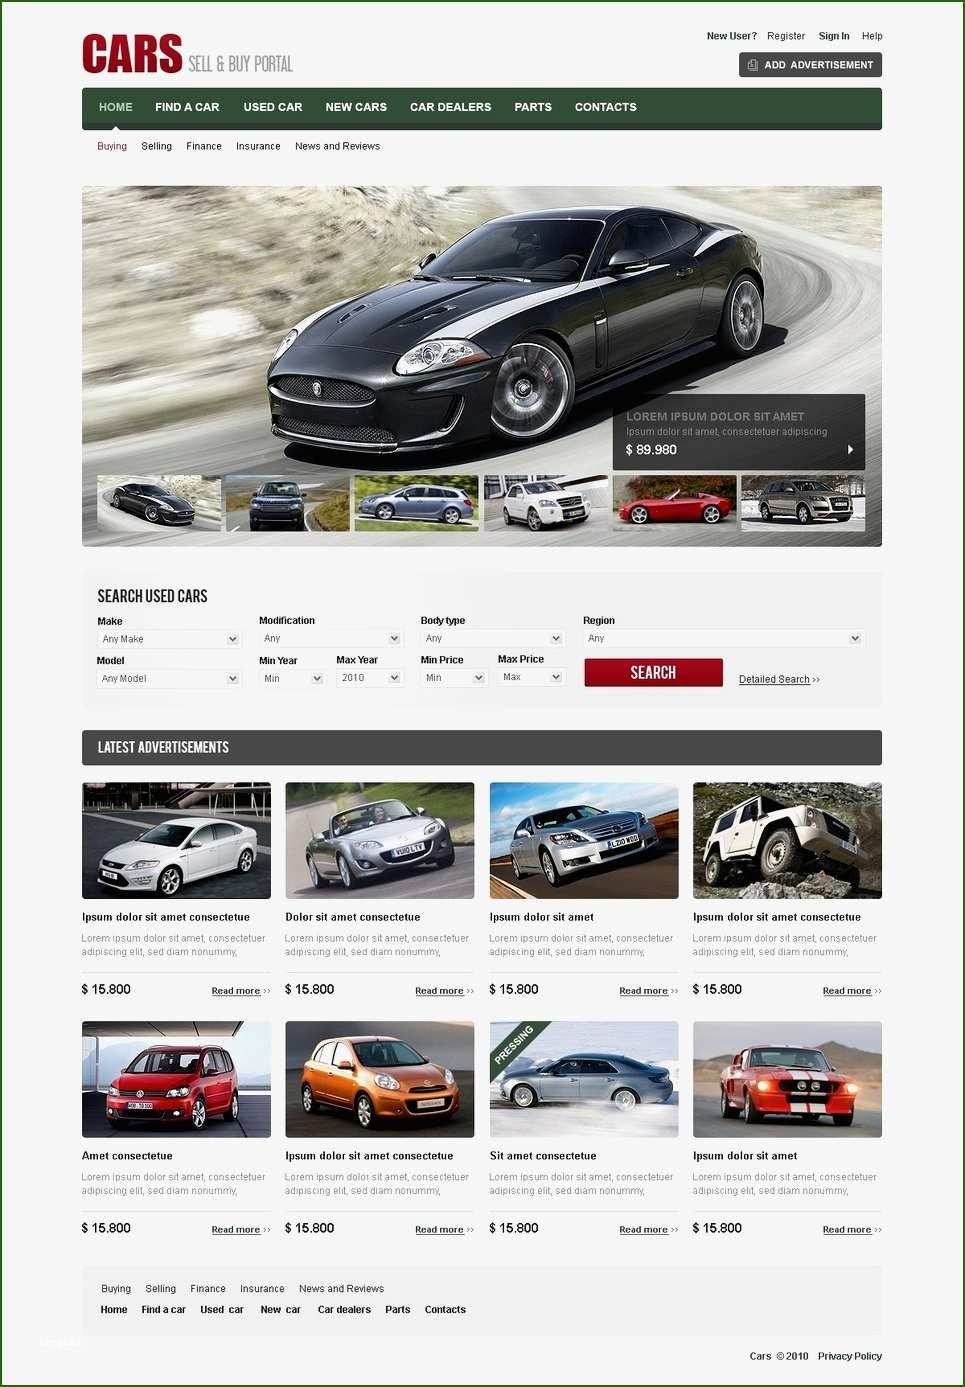 18 Terrific Car Dealer Website Template That Will Wow You Used Cars Movie Car Dealer Car Flash Car dealer website template free